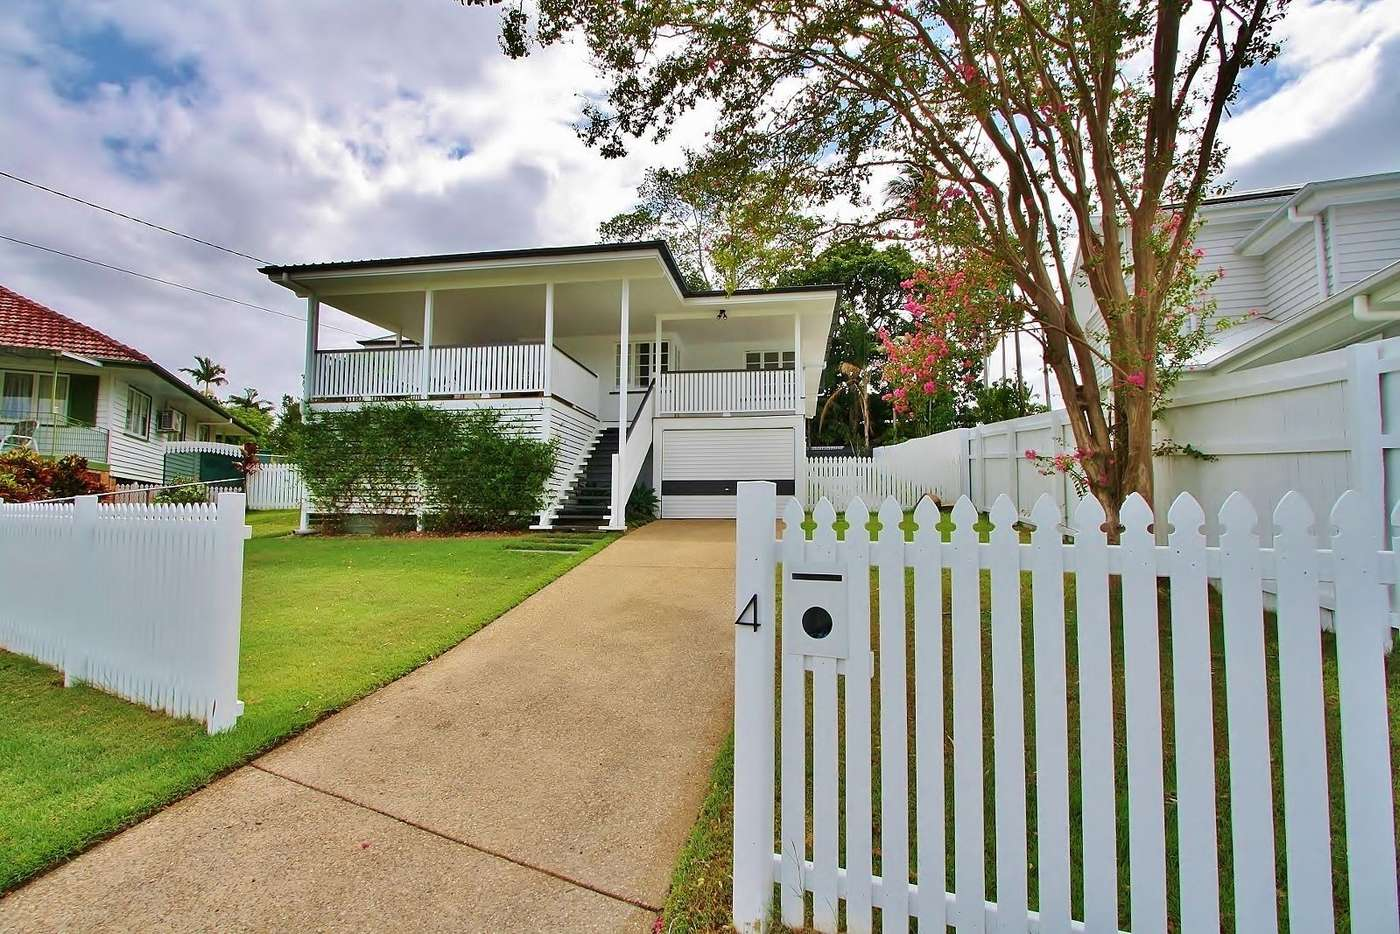 Main view of Homely house listing, 4 Avesnes Street, Holland Park QLD 4121